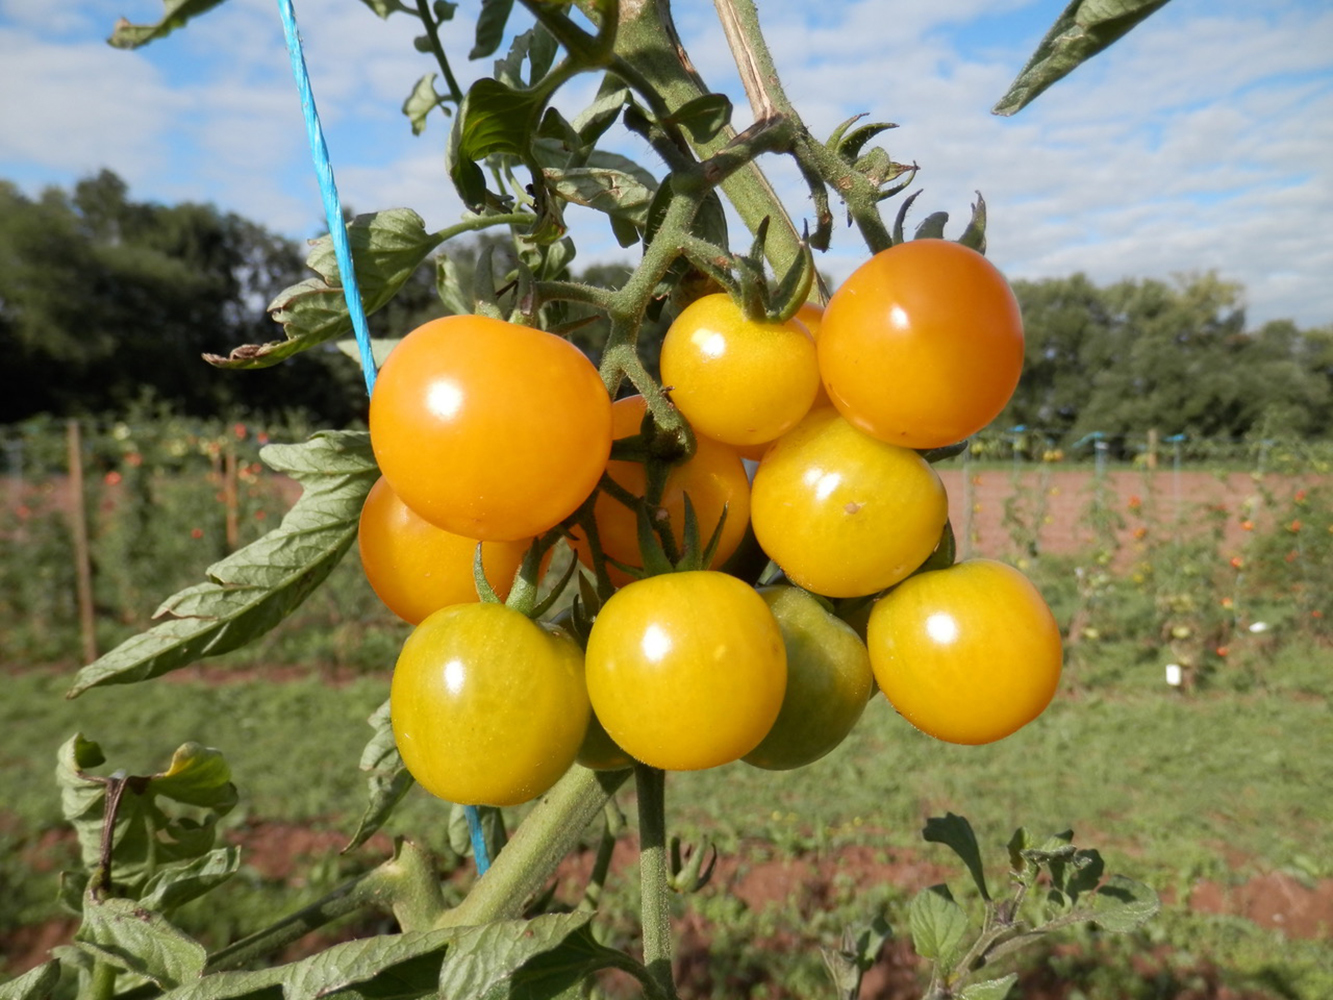 Tomatoes of the Sunviva variety at the University of Göttingen.